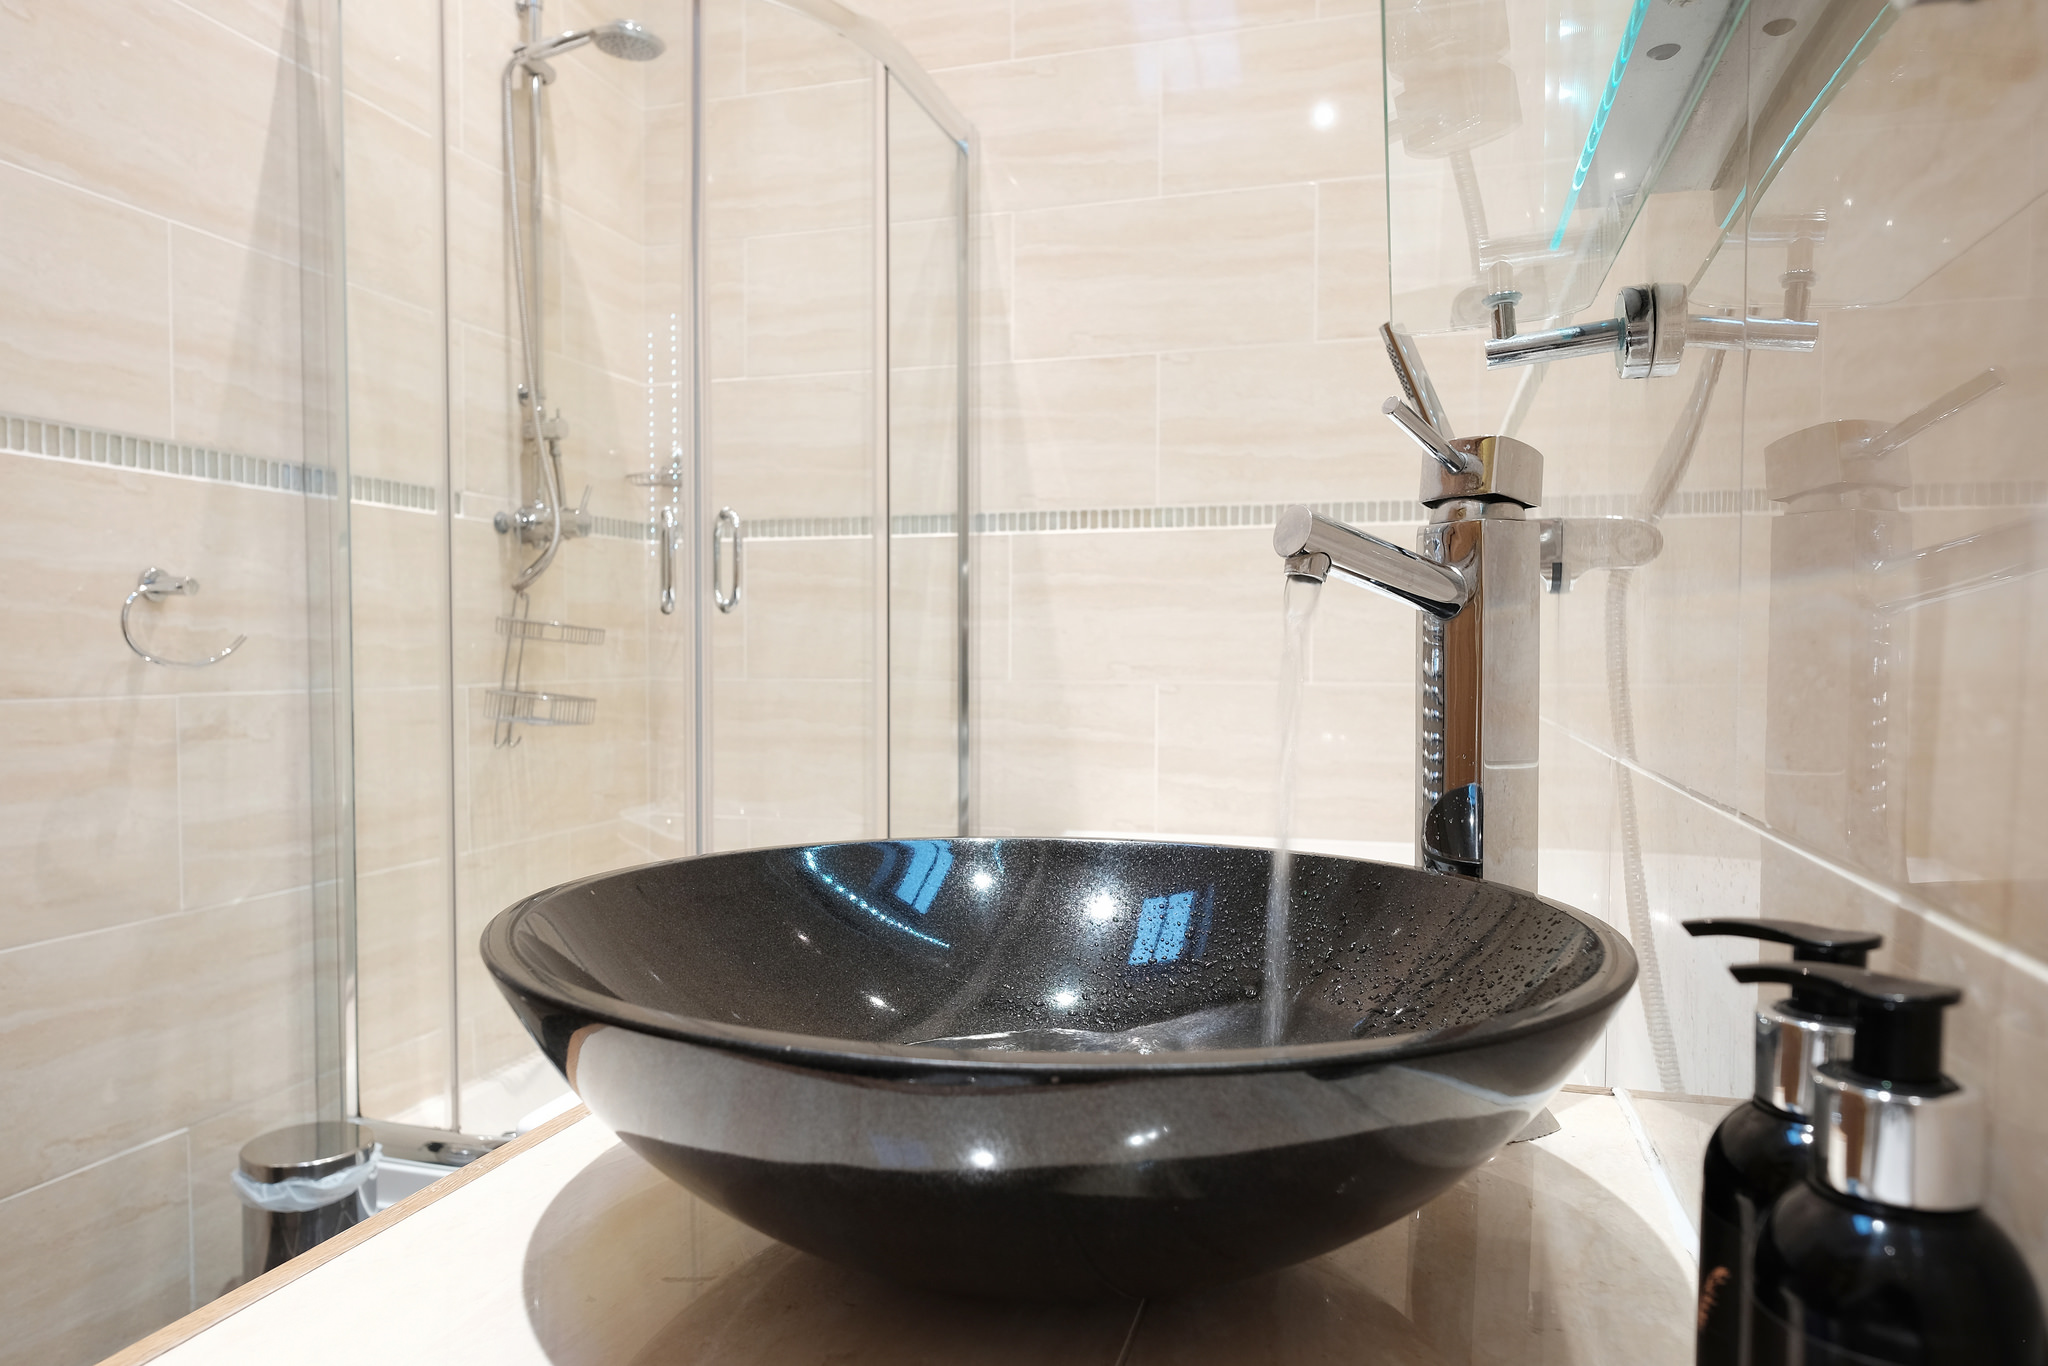 Round black hand basin in the bathroom